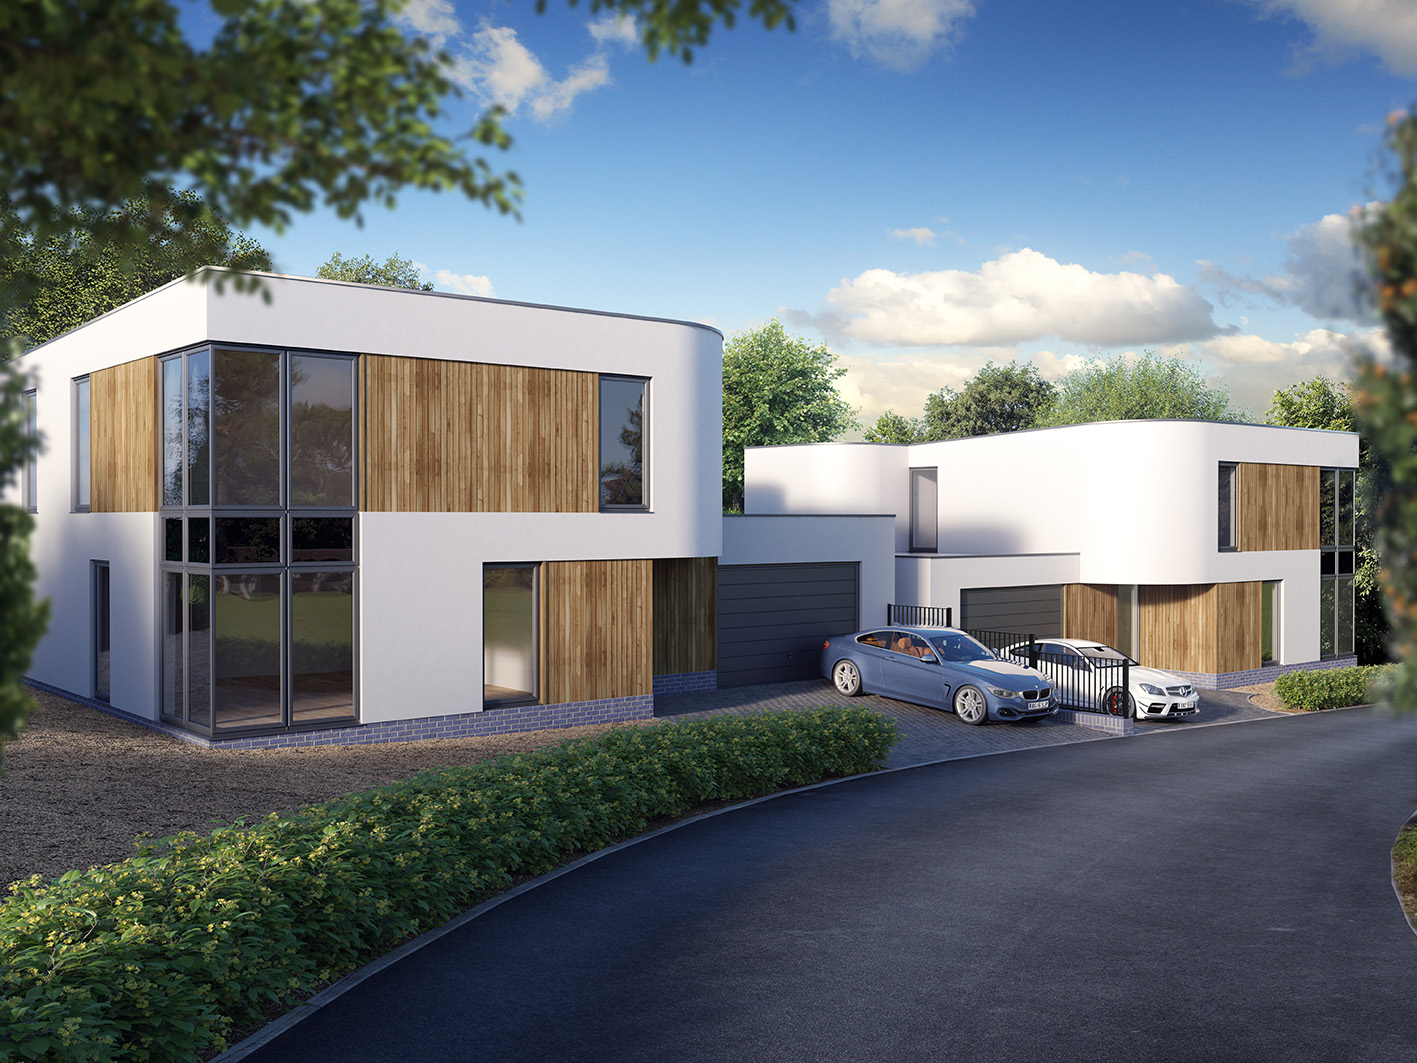 architectural illustrations, architectural visualisation, artists impression, property CGI, housing cgi, cgi midlands, cgi birmingham, best property cgi